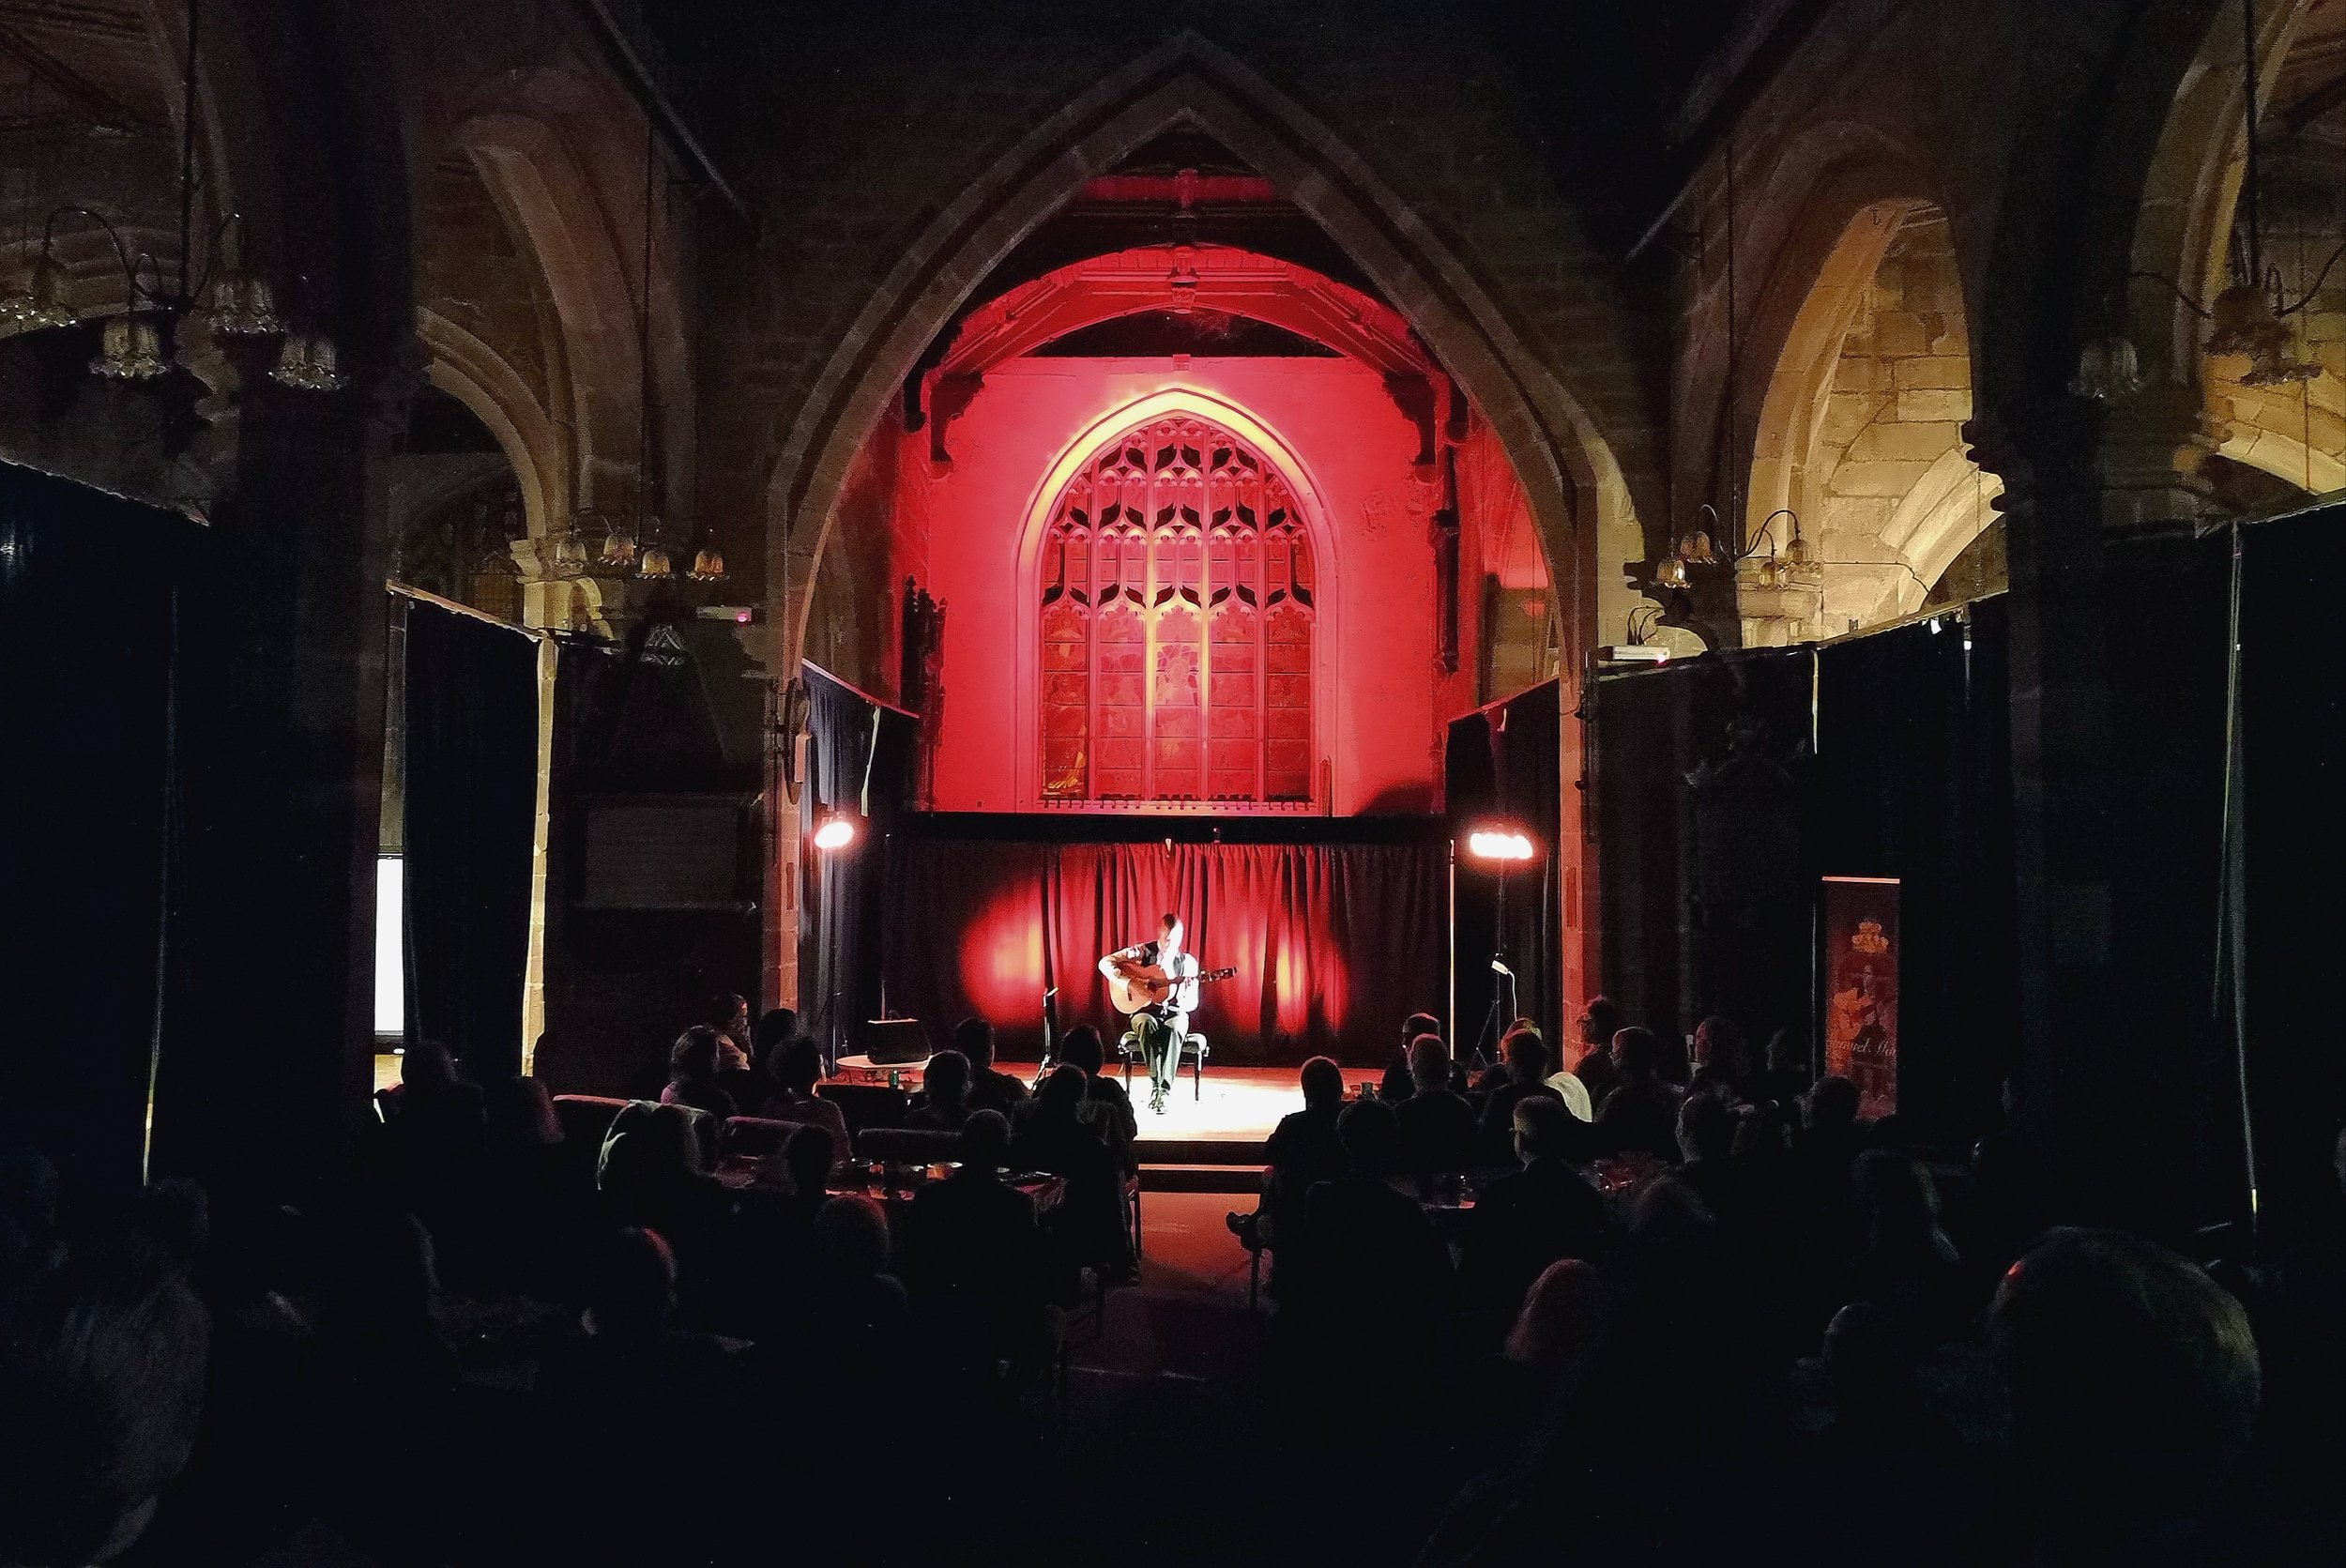 Samuel Moore live on Oct 20th in St Mary's Creative Space (Chester)